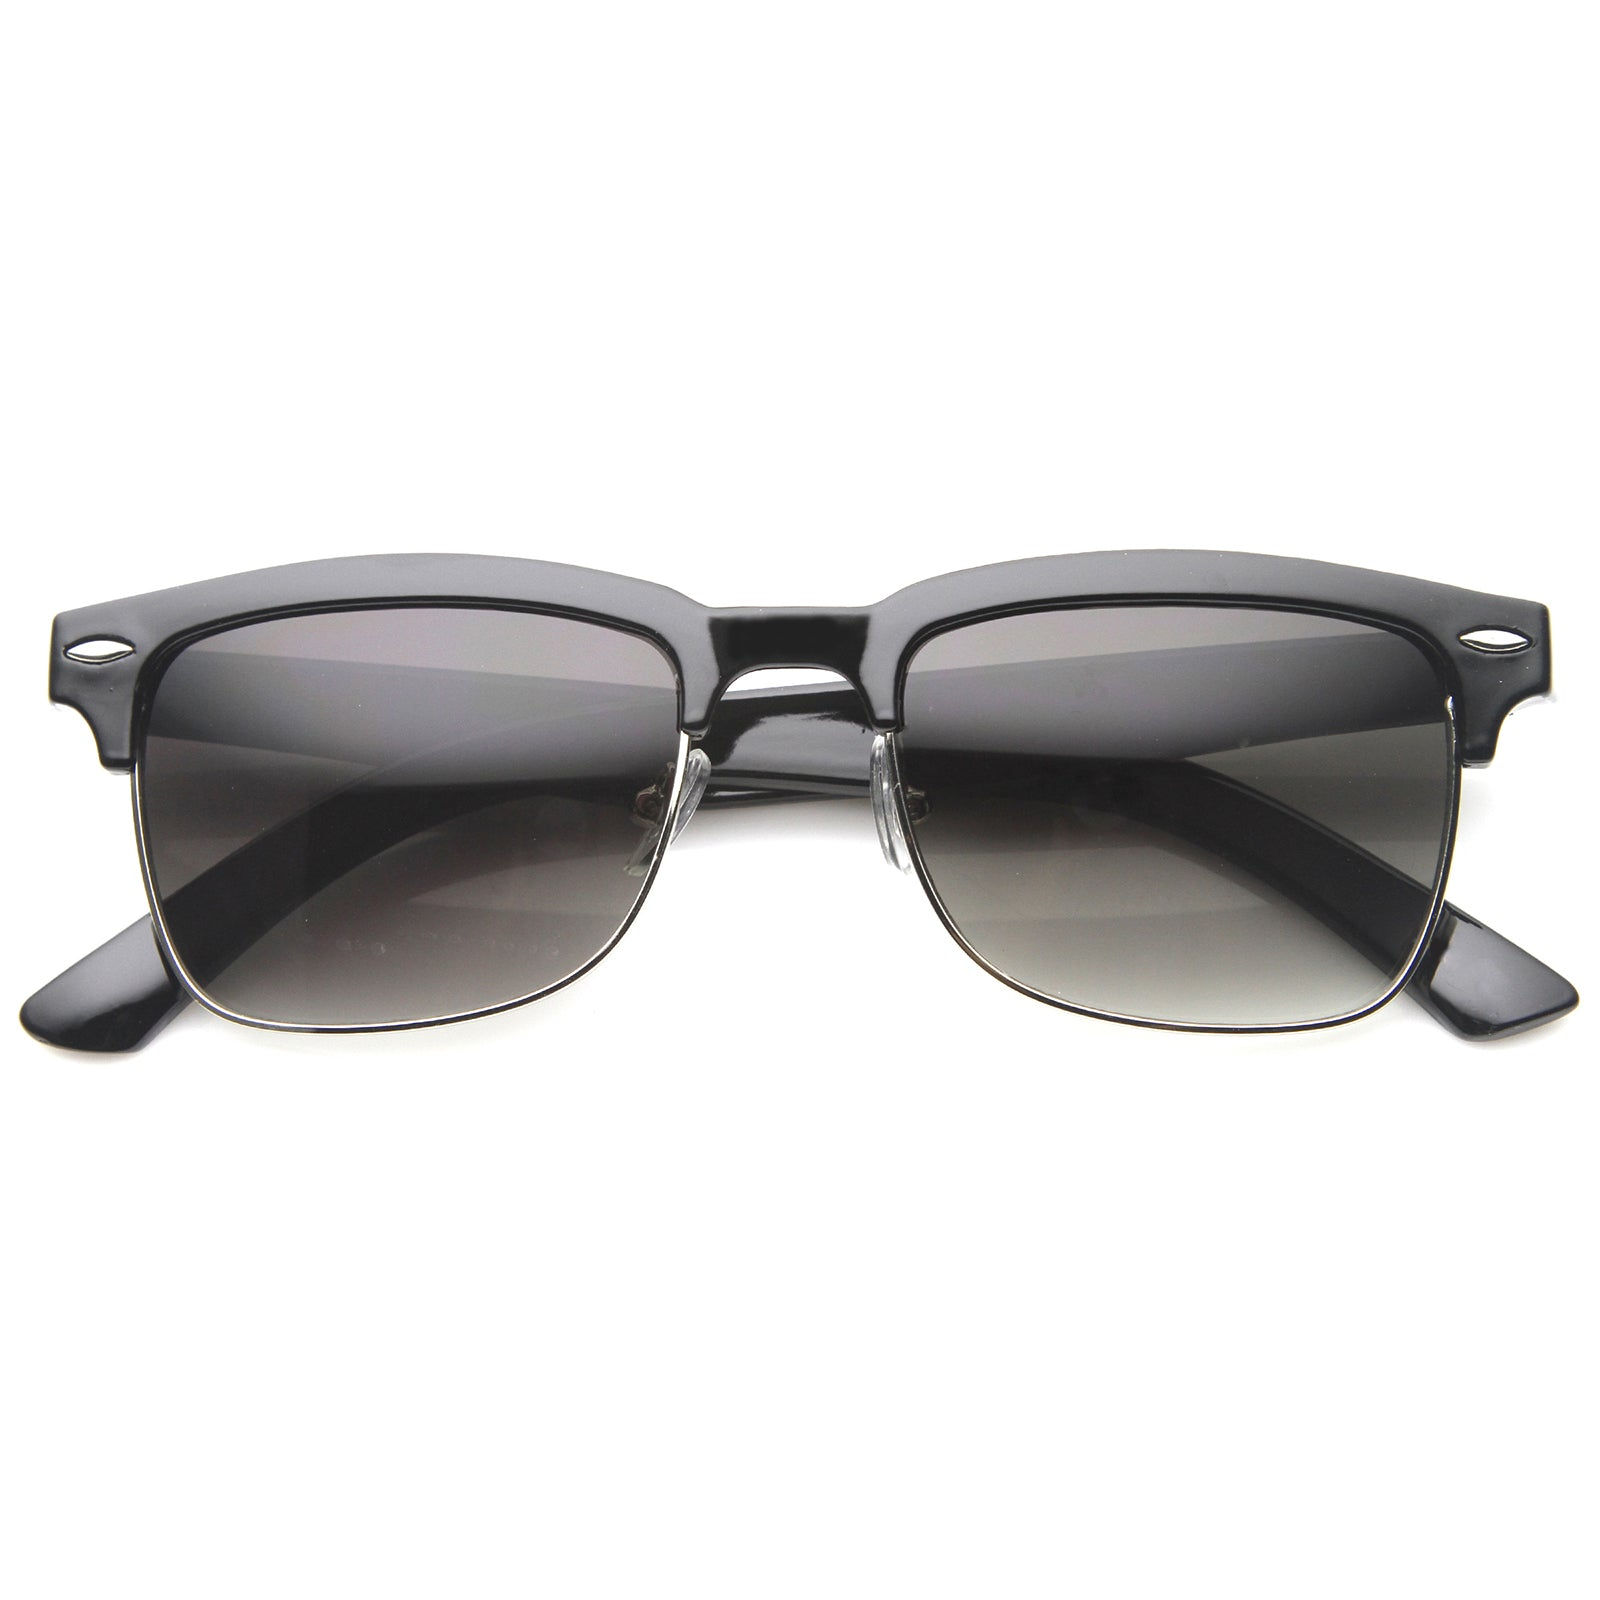 Mens Semi-Rimless Sunglasses With UV400 Protected Composite Lens - sunglass.la - 8